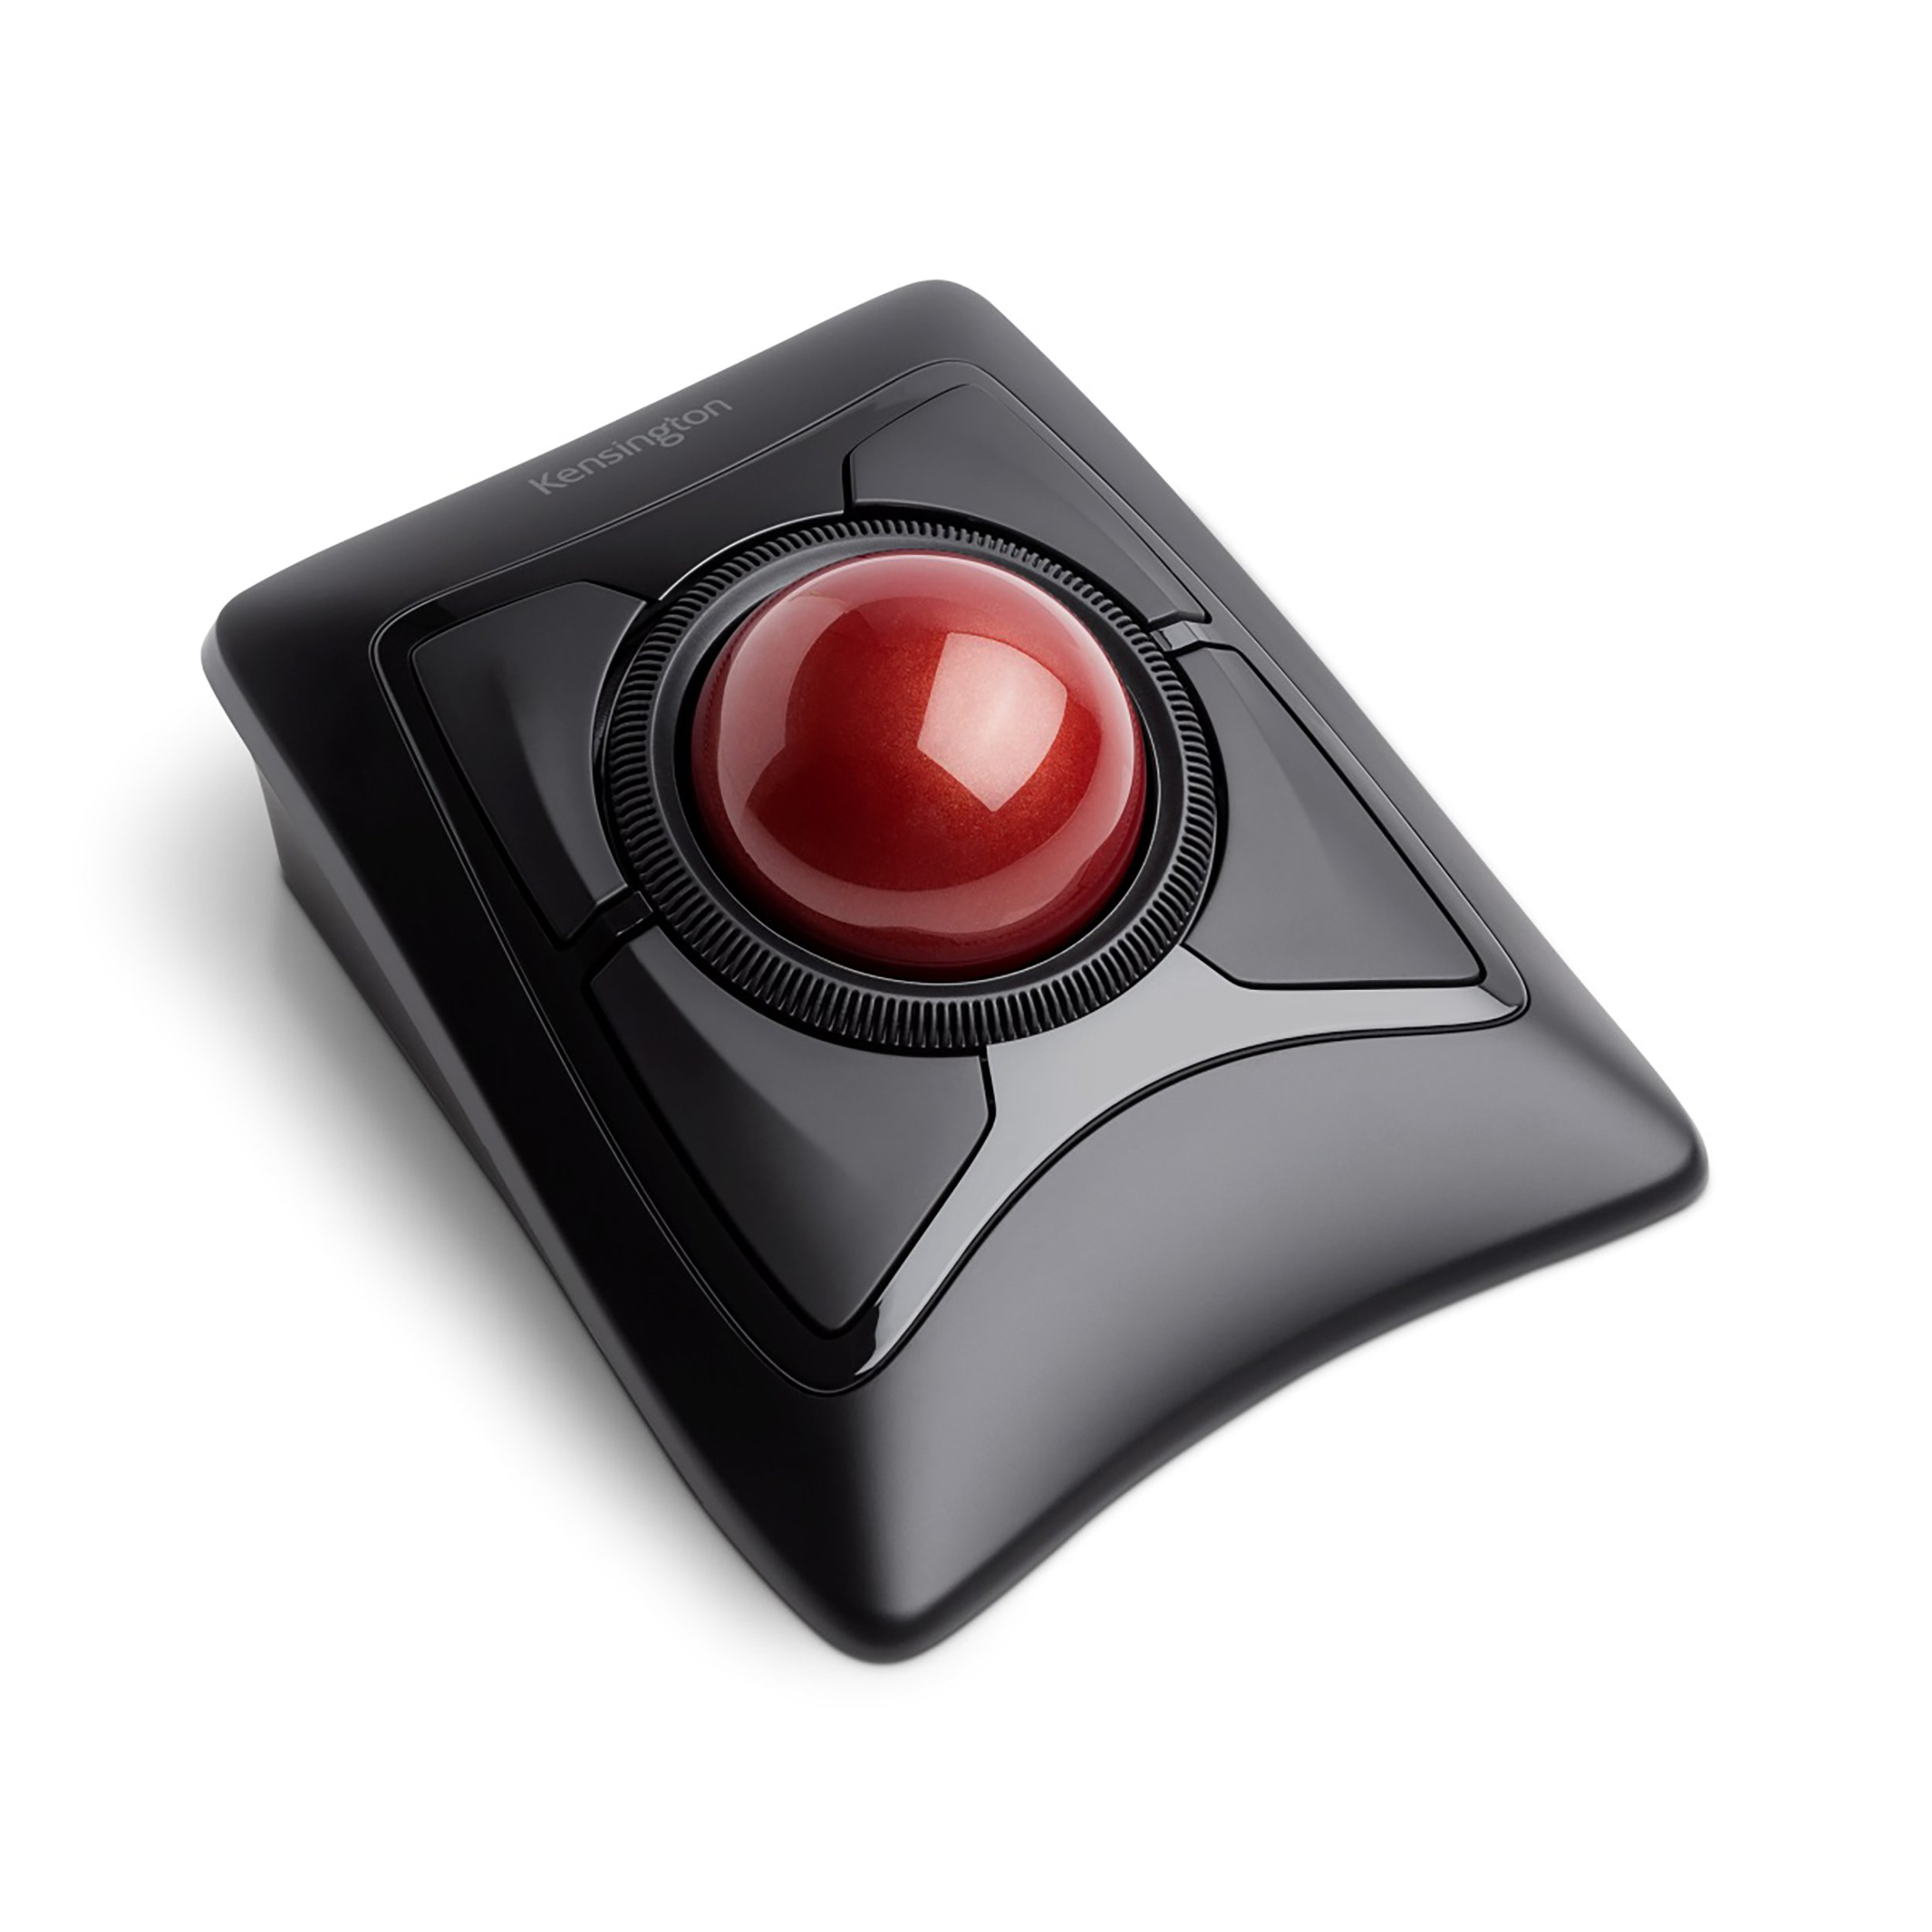 Kensington Expert Wireless Trackball Mouse (K72359WW) by Kensington